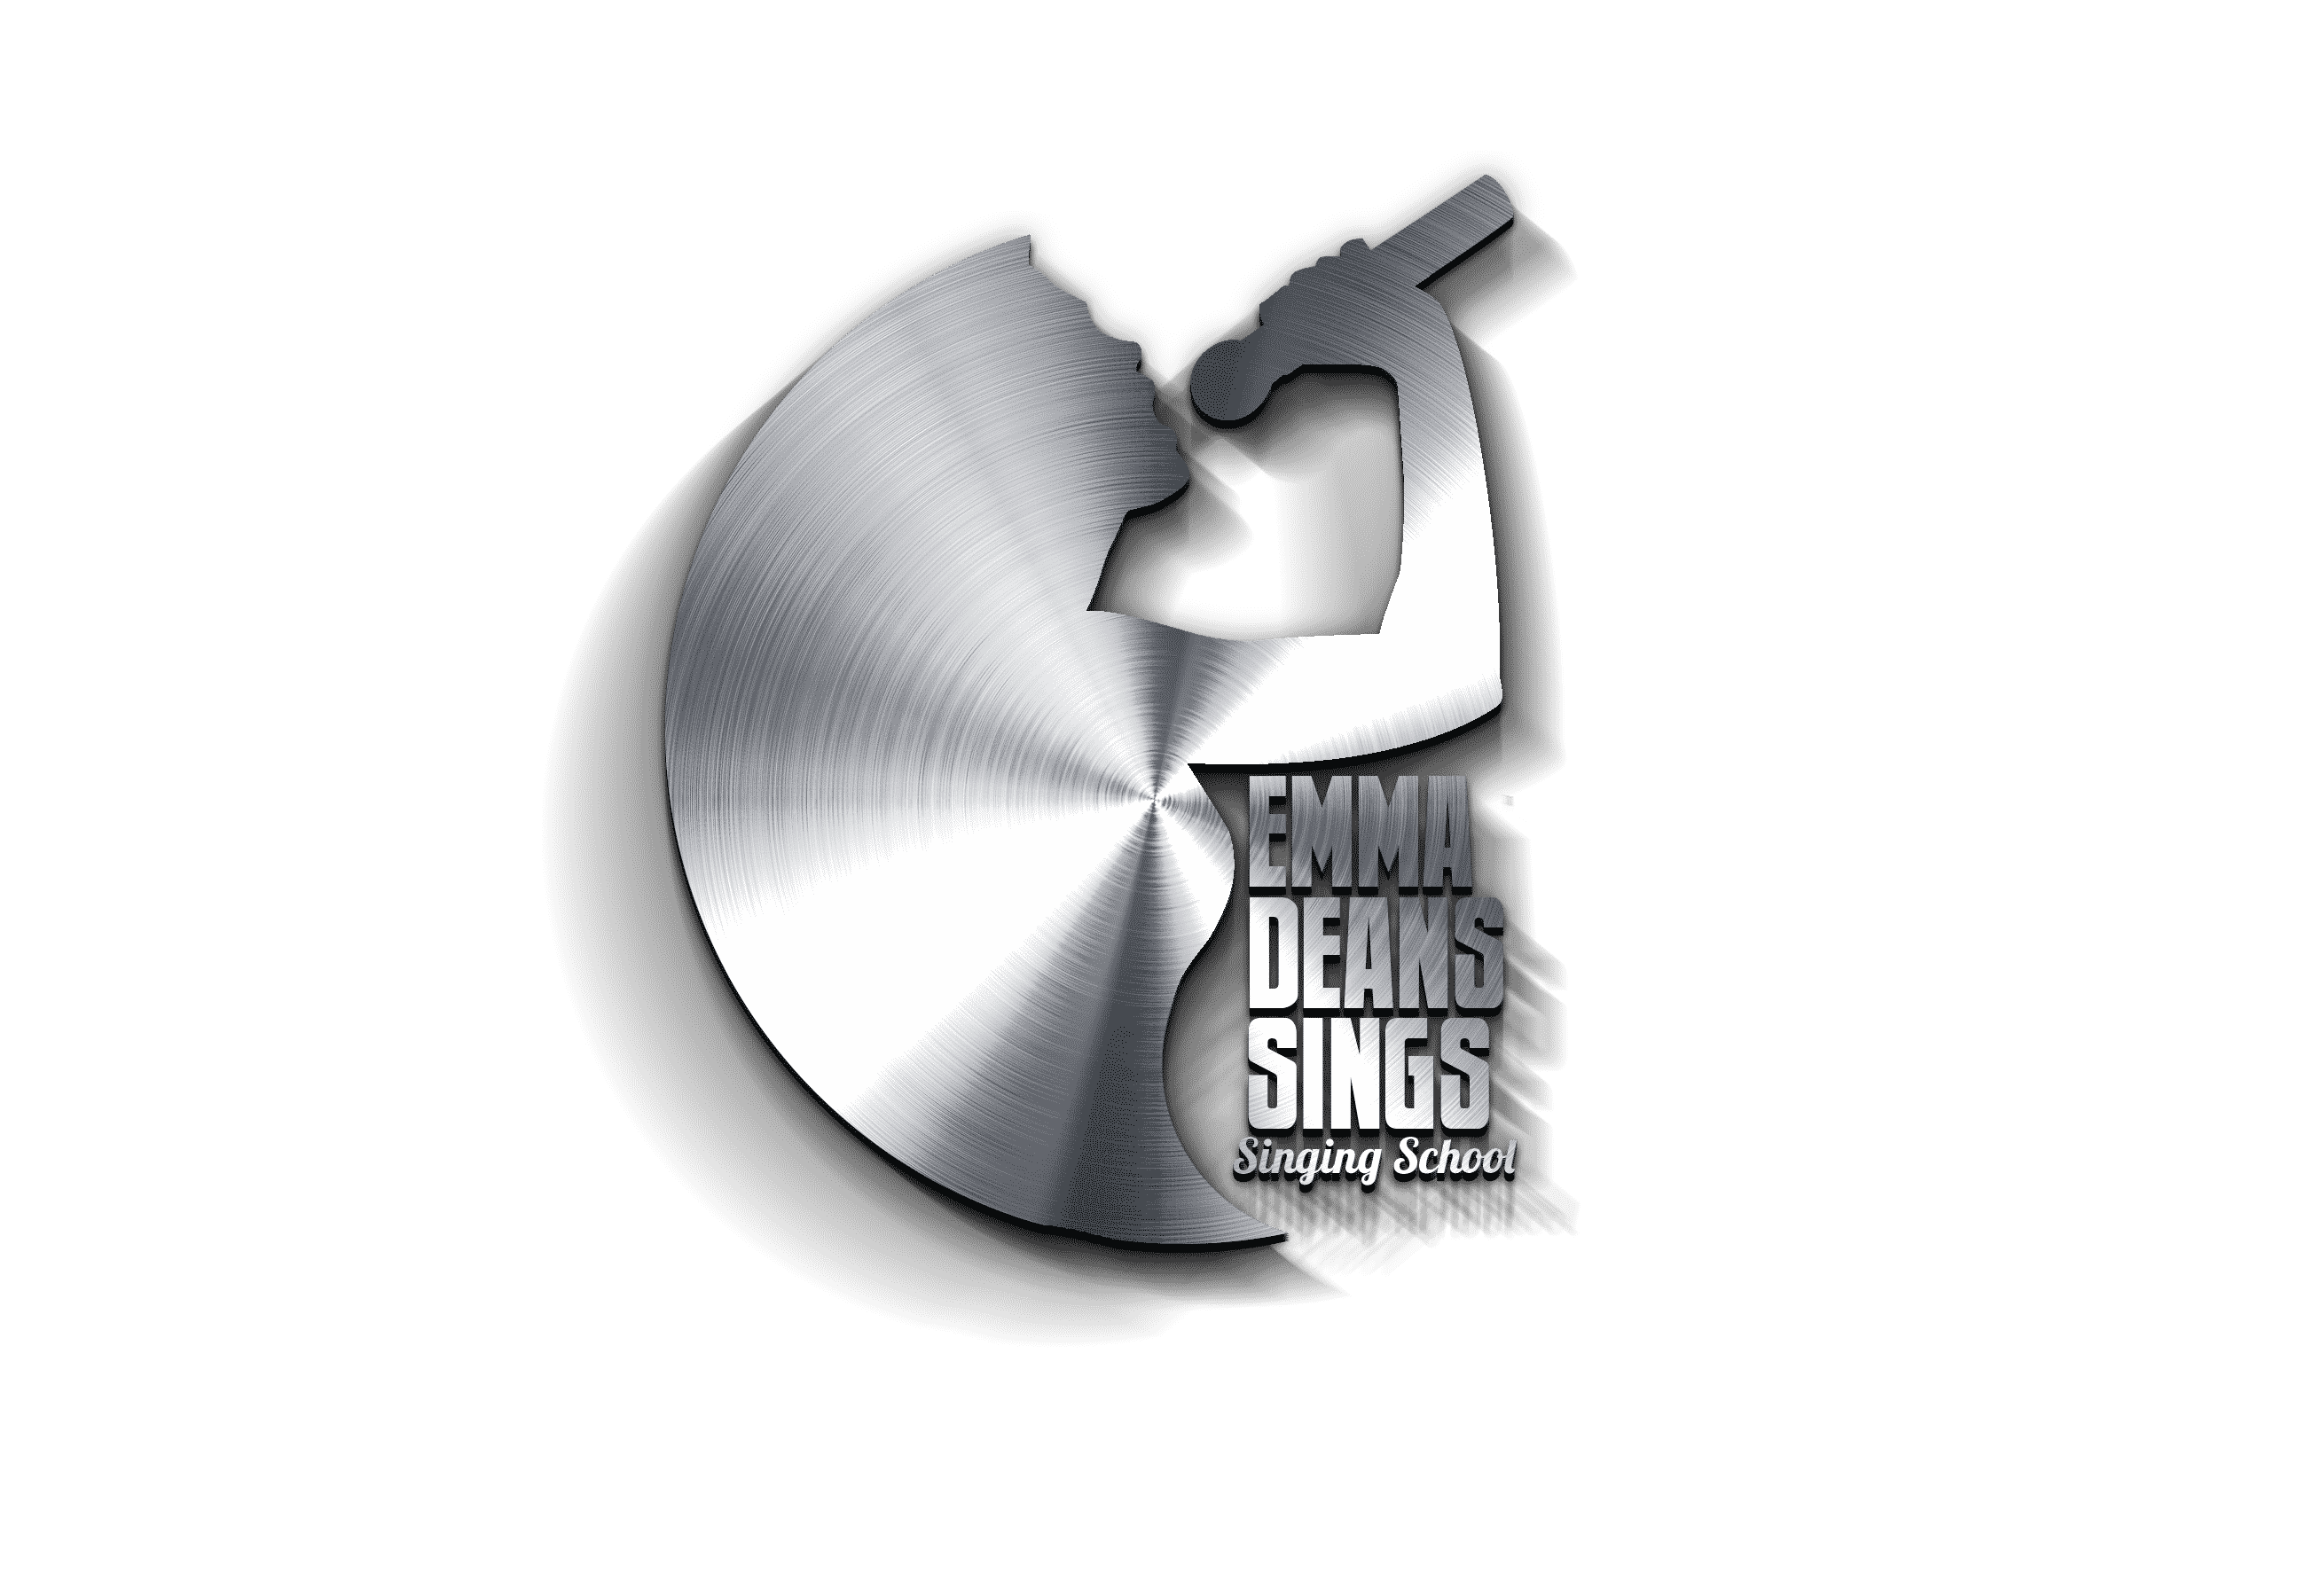 Emma Deans Sings - Singing School in Balmain and Ryde